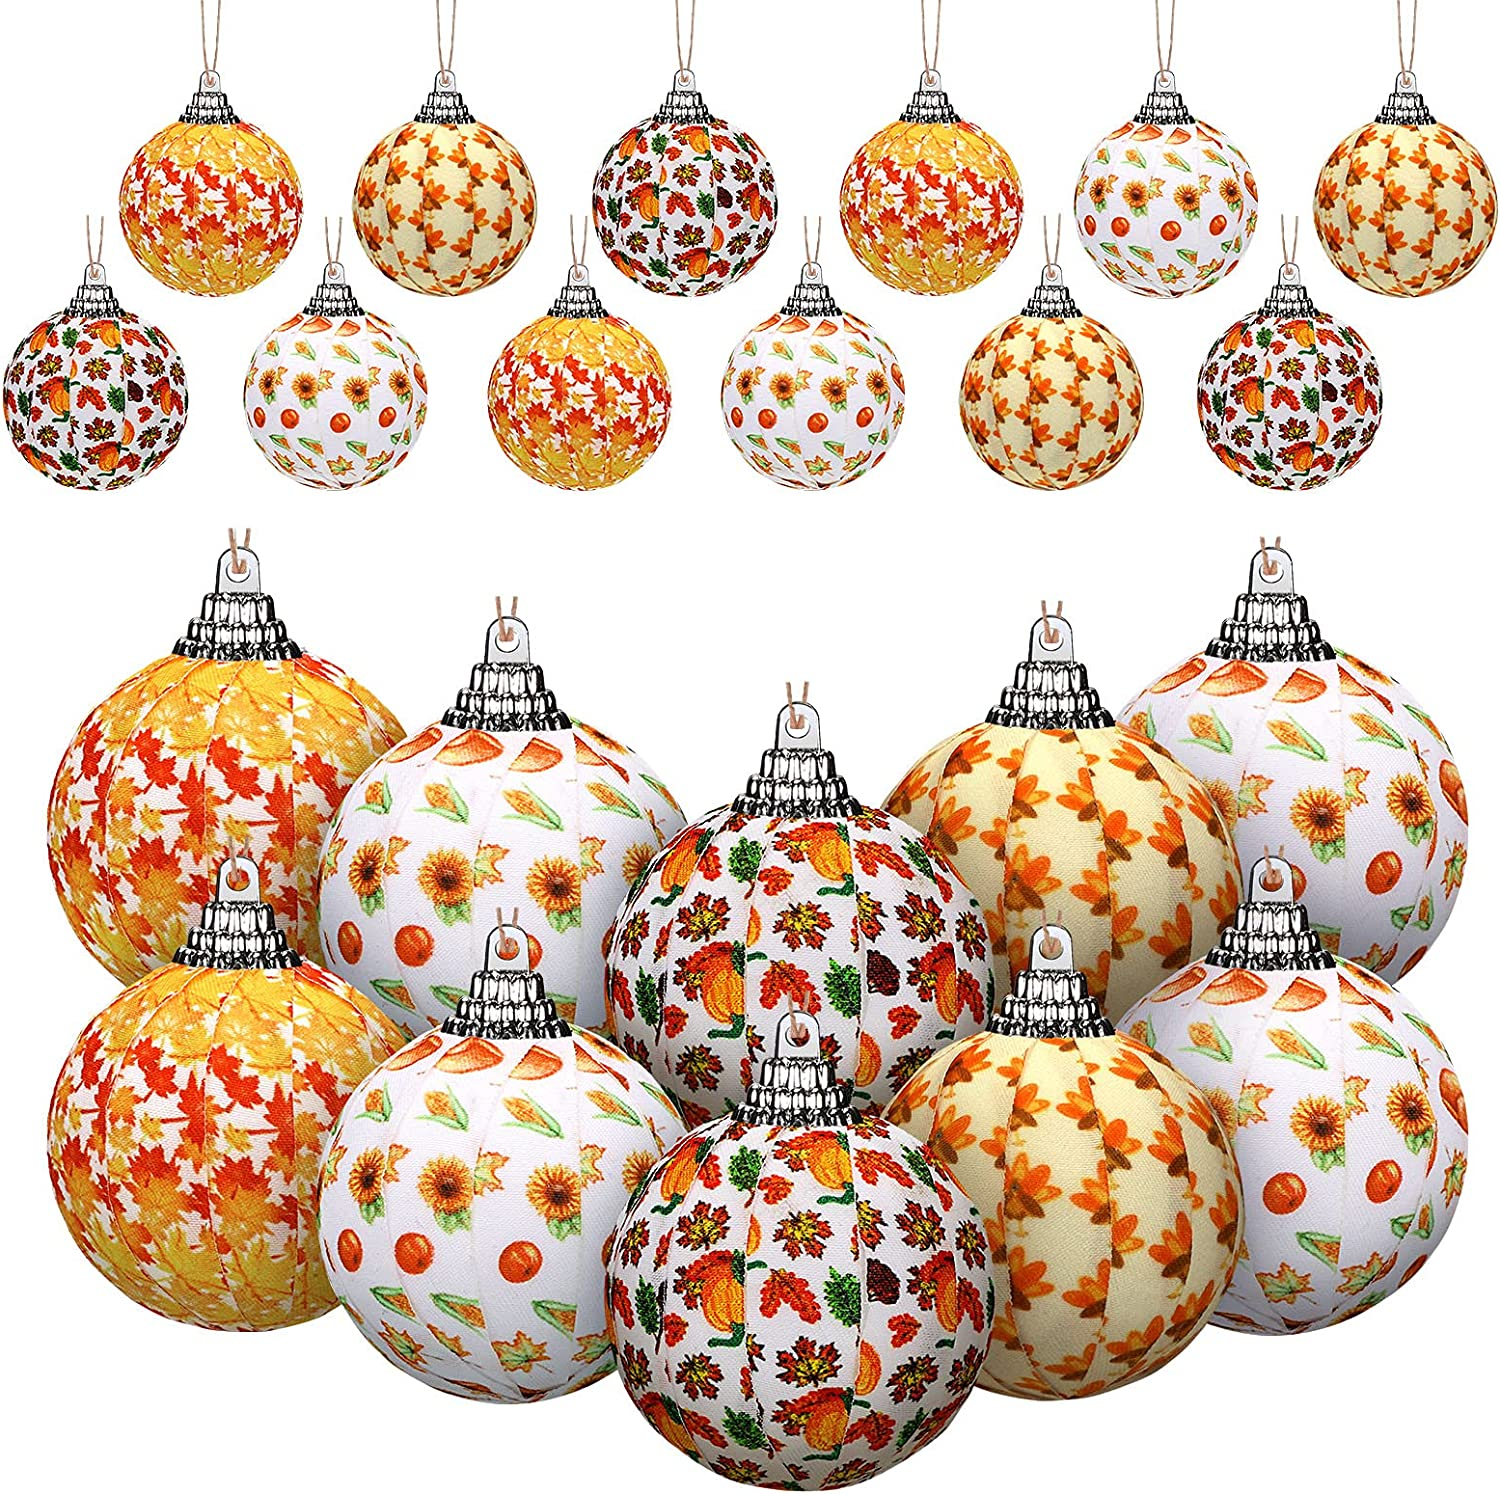 16 Pieces Fall Hanging Ball Ornament Thanksgiving Fabric Wrapped Hanging Ball 2 Inch Ball Hanging Ornament with Turkey Pumpkin Maple Leaves for Home Fall Thanksgiving Day Party Decoration